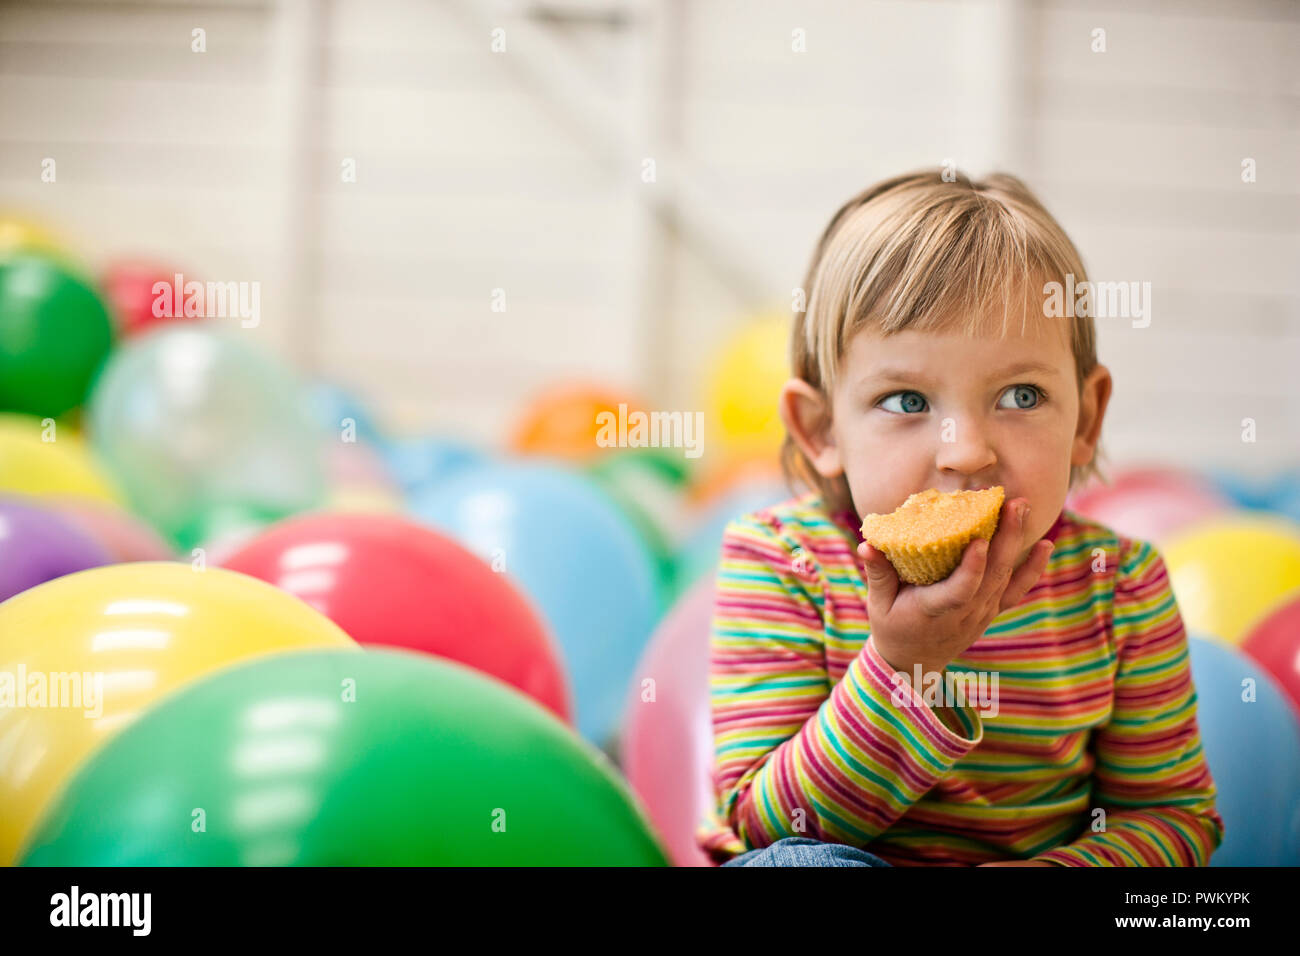 Little girl sitting in a room full of balloons and eating a cupcake. Stock Photo